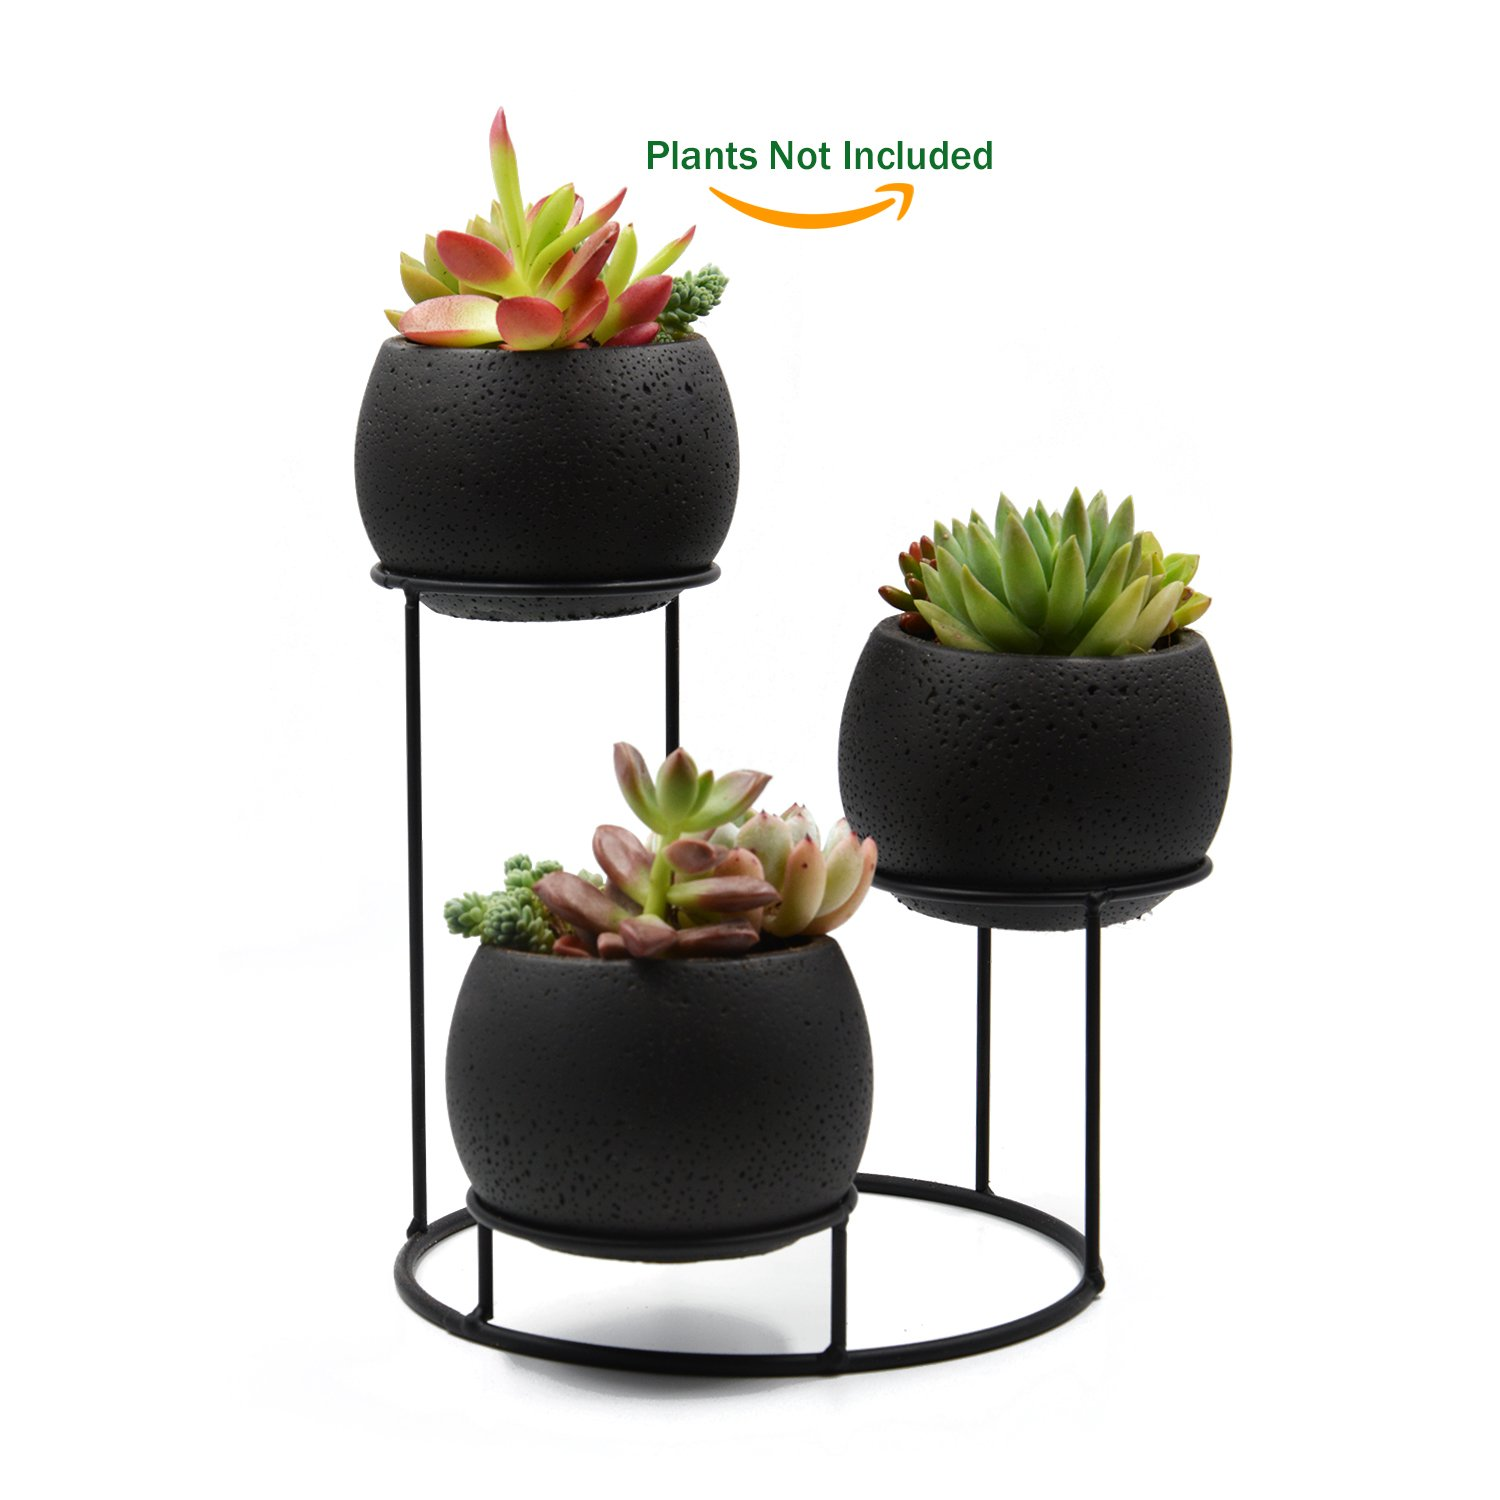 UDMG Small Succulent Cactus Plant Pot, 3 Black Cement Planters with a Iron Stand Holder by UDMG